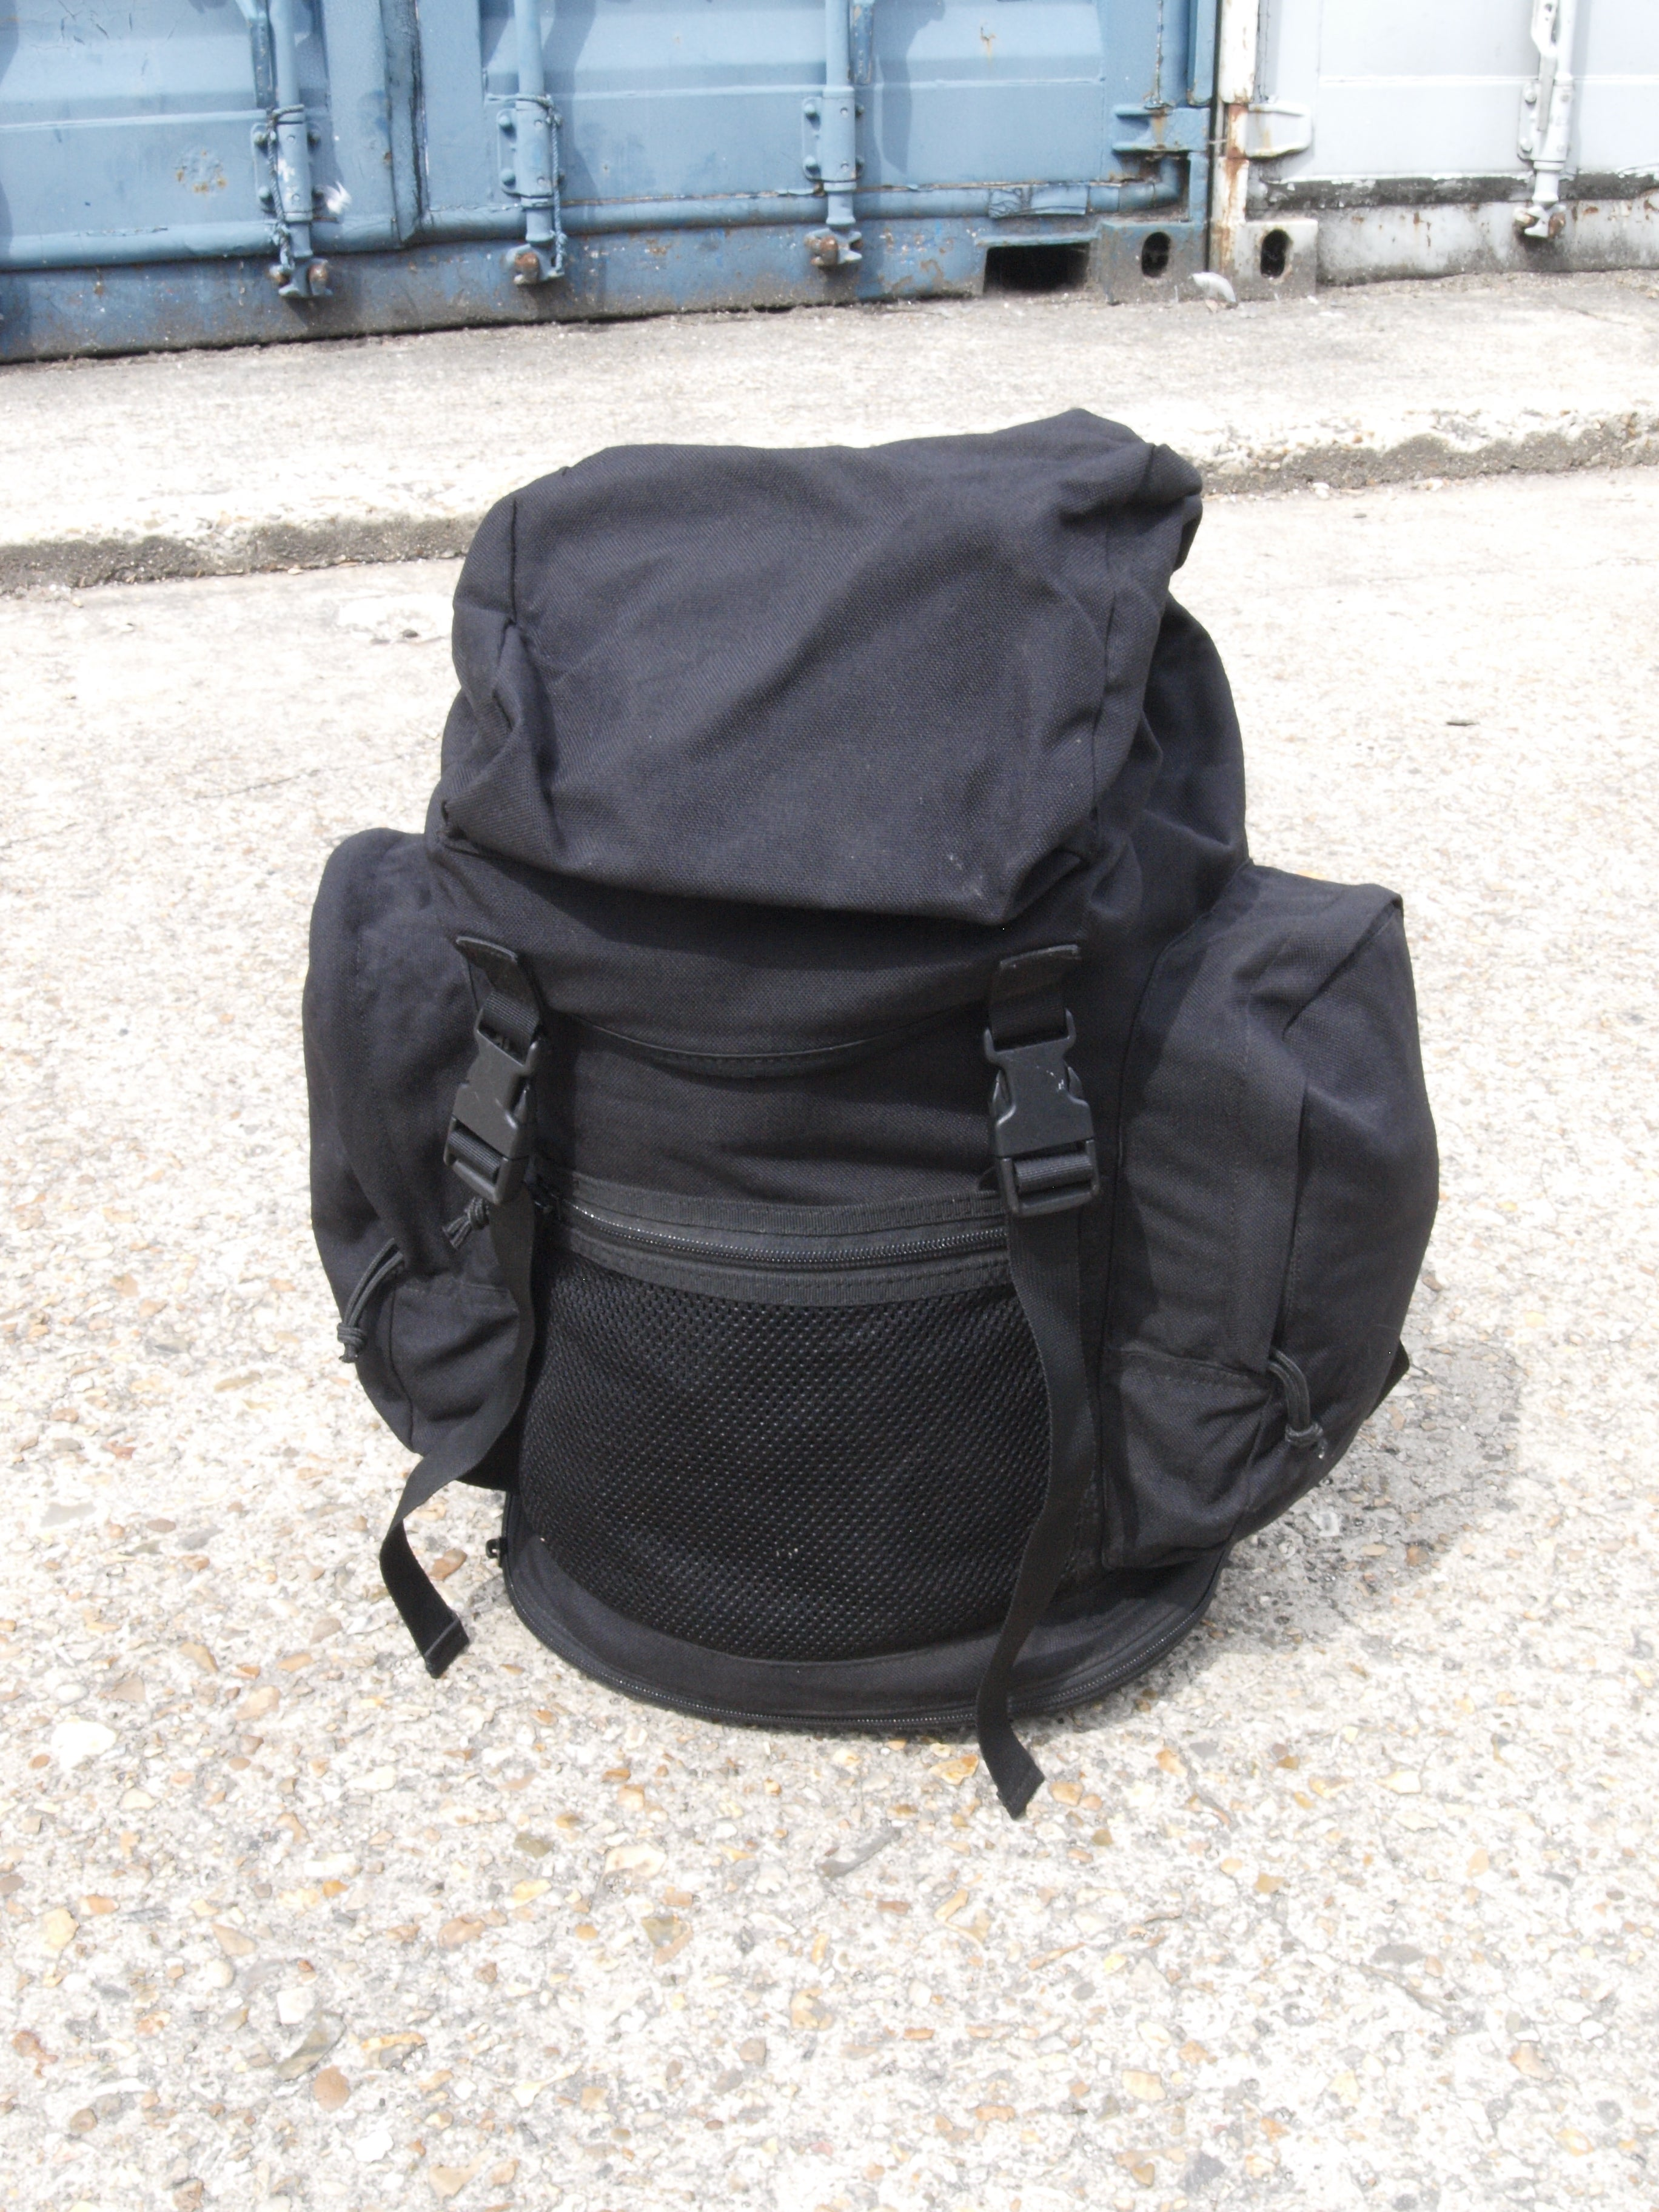 British Army Black Rucksack – 30 litre